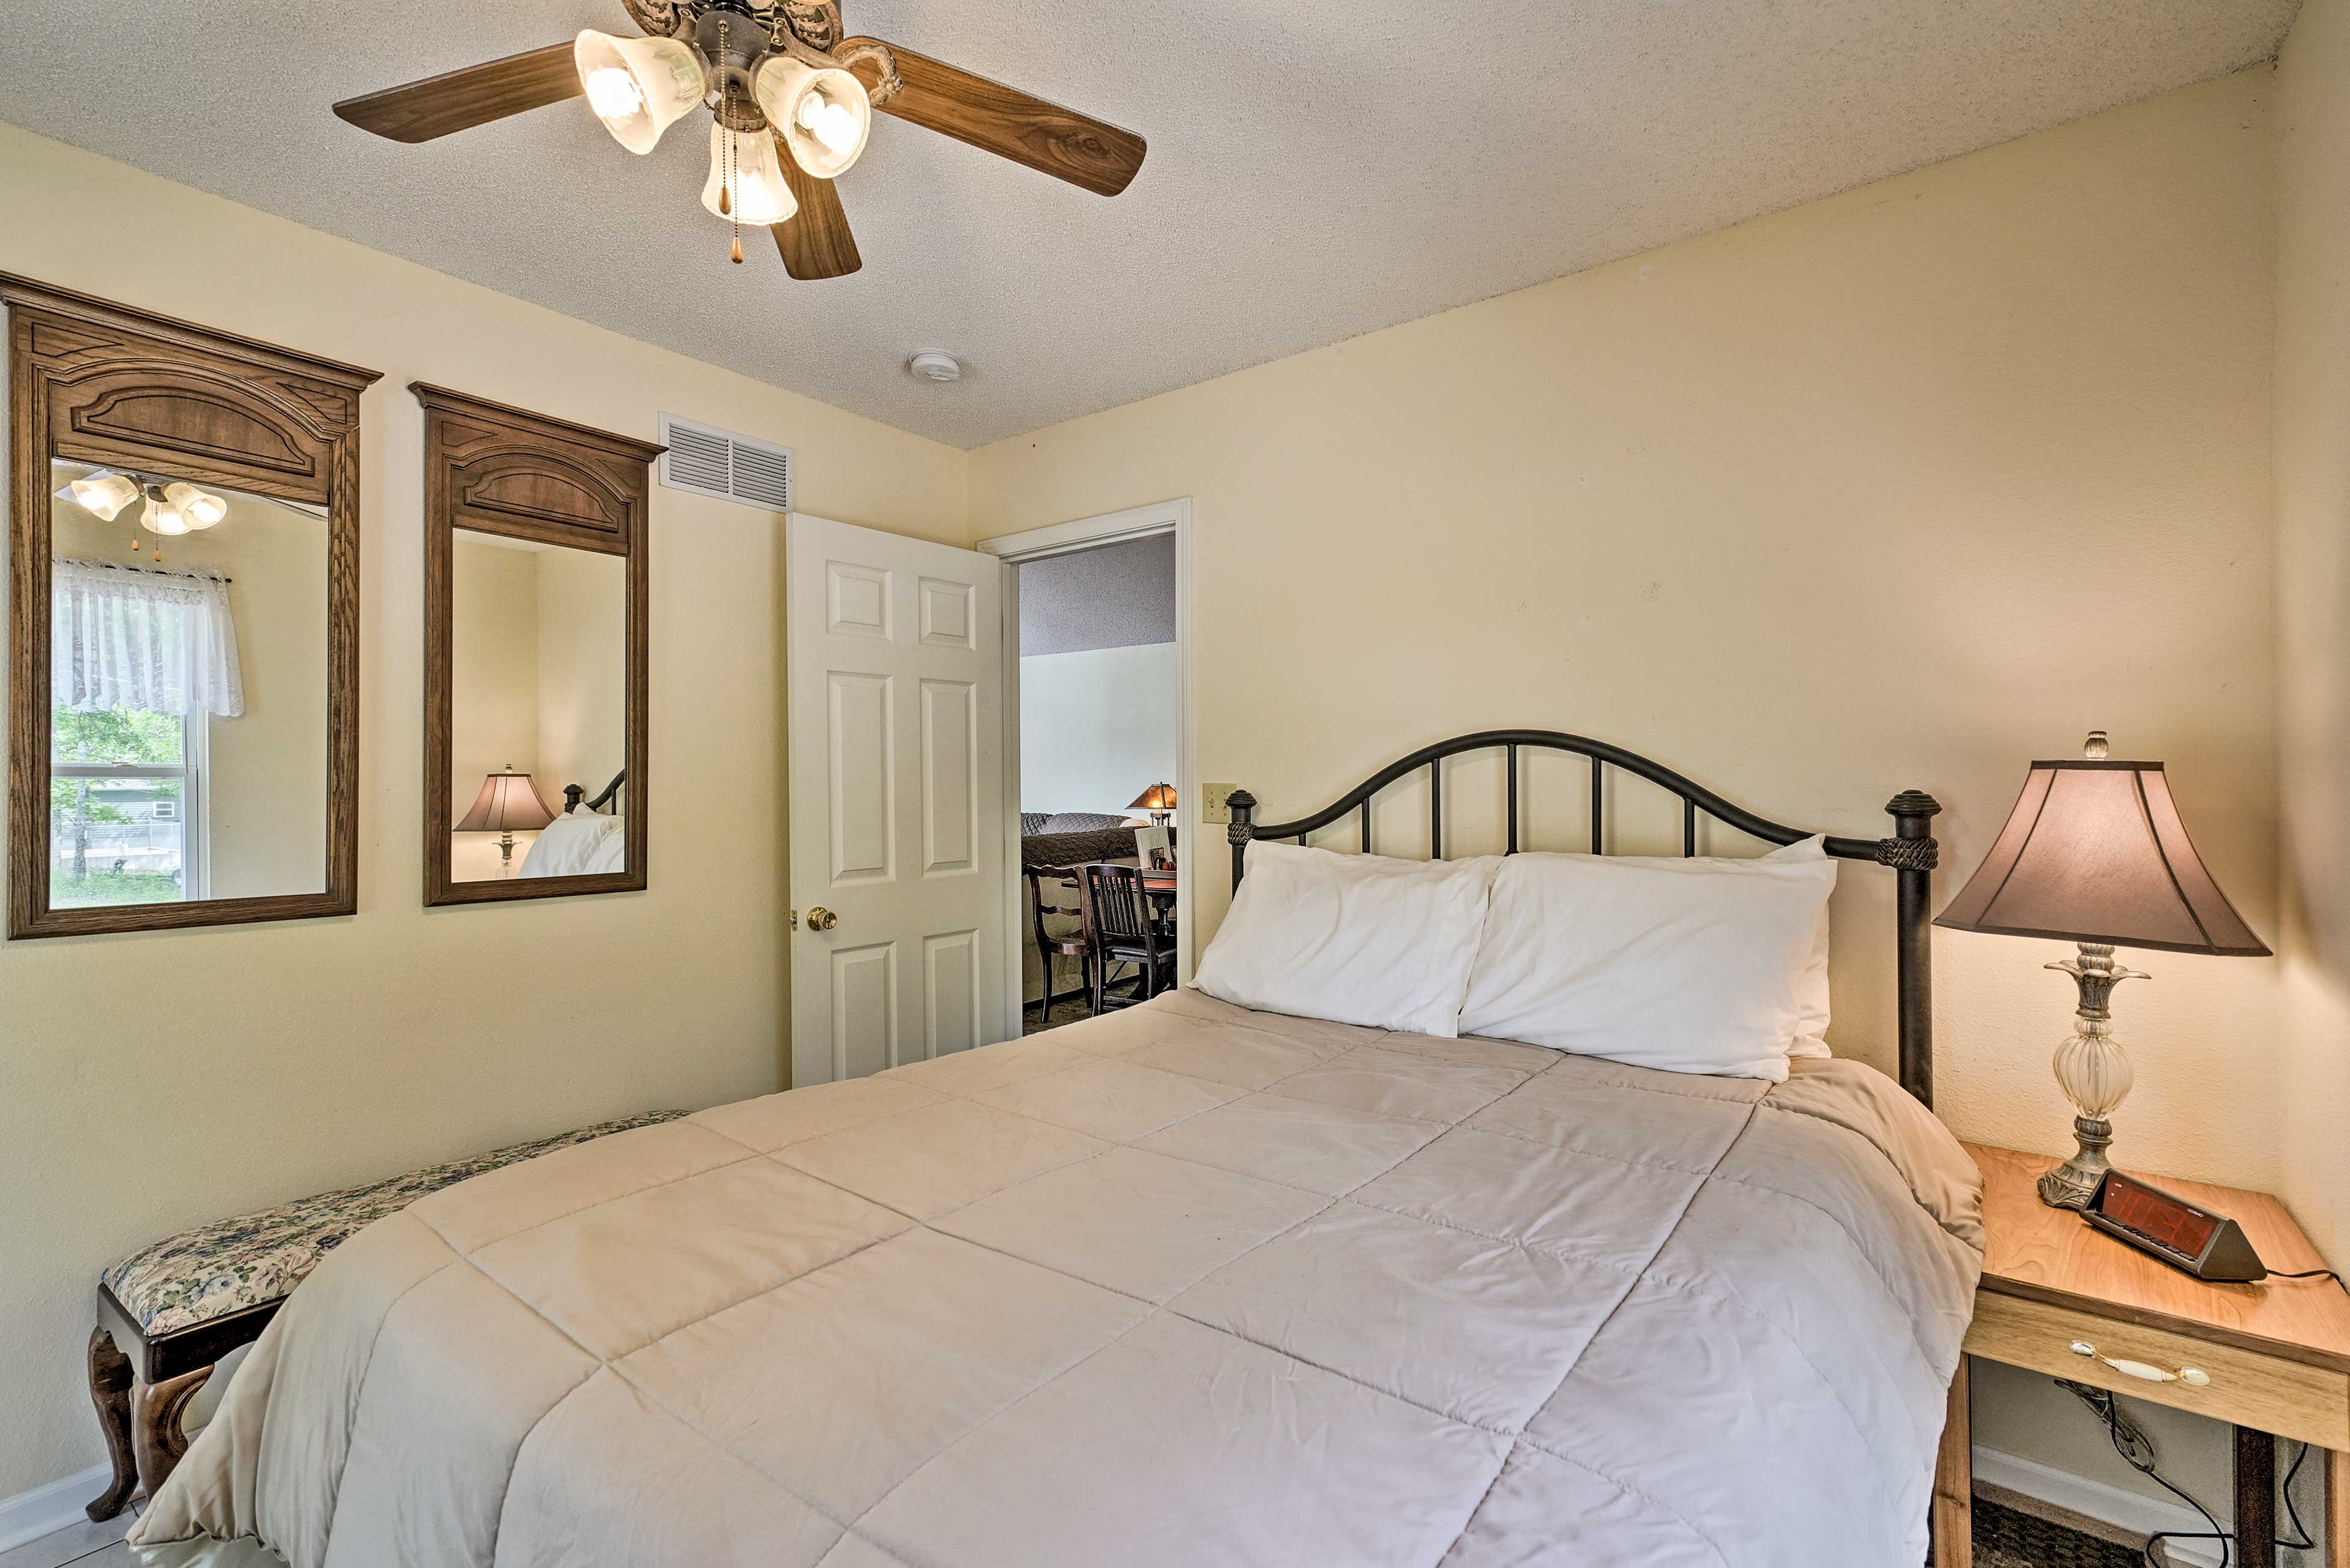 The 3rd bedroom also features a cozy queen bed.